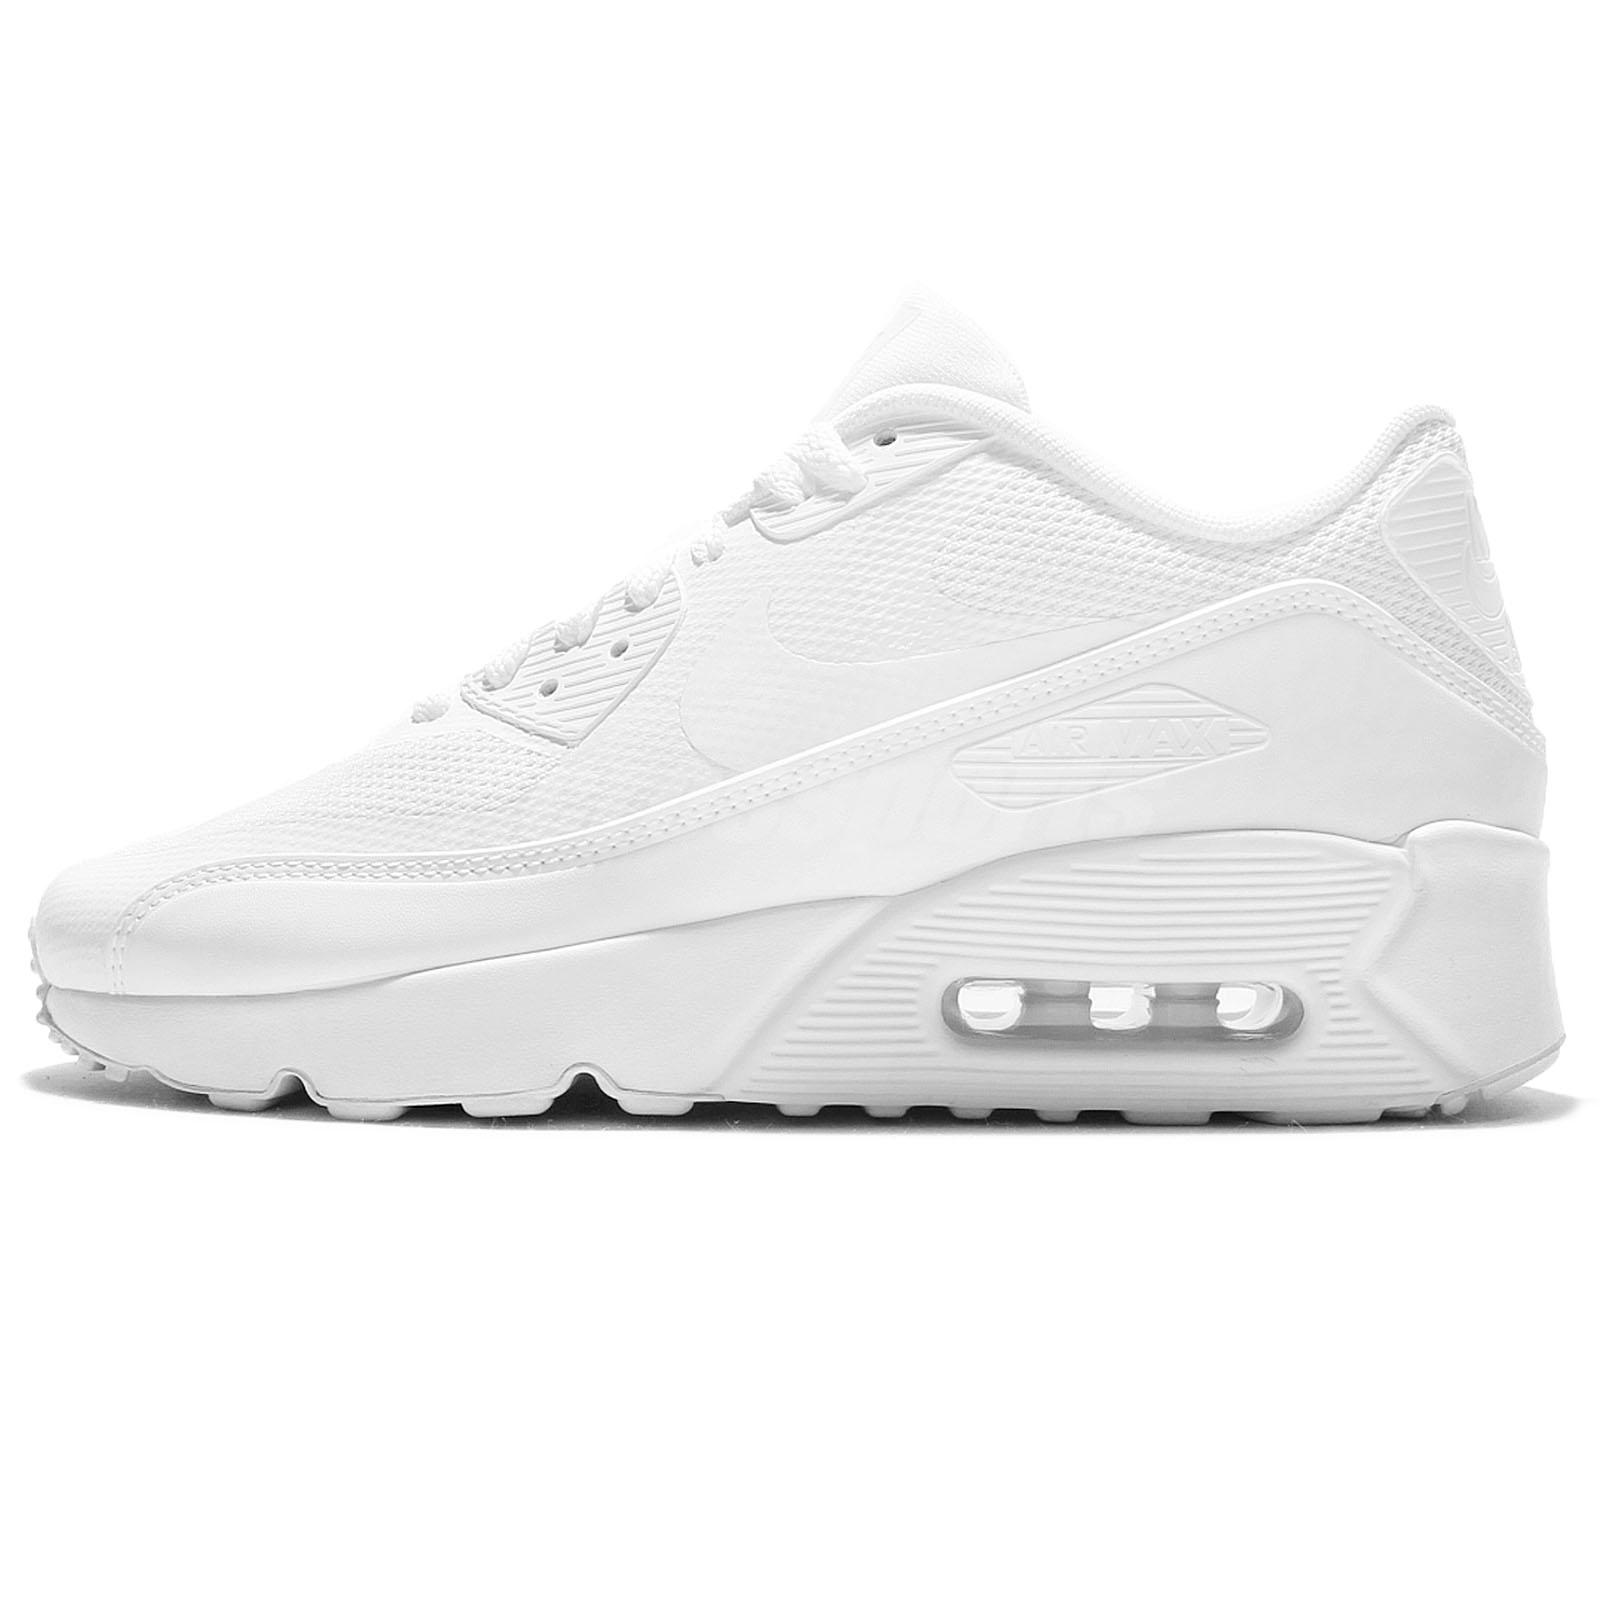 buy online fec13 73a59 Nike Air Max 90 Ultra 2.0 GS Triple White Kid Women Running Shoes 869950-100